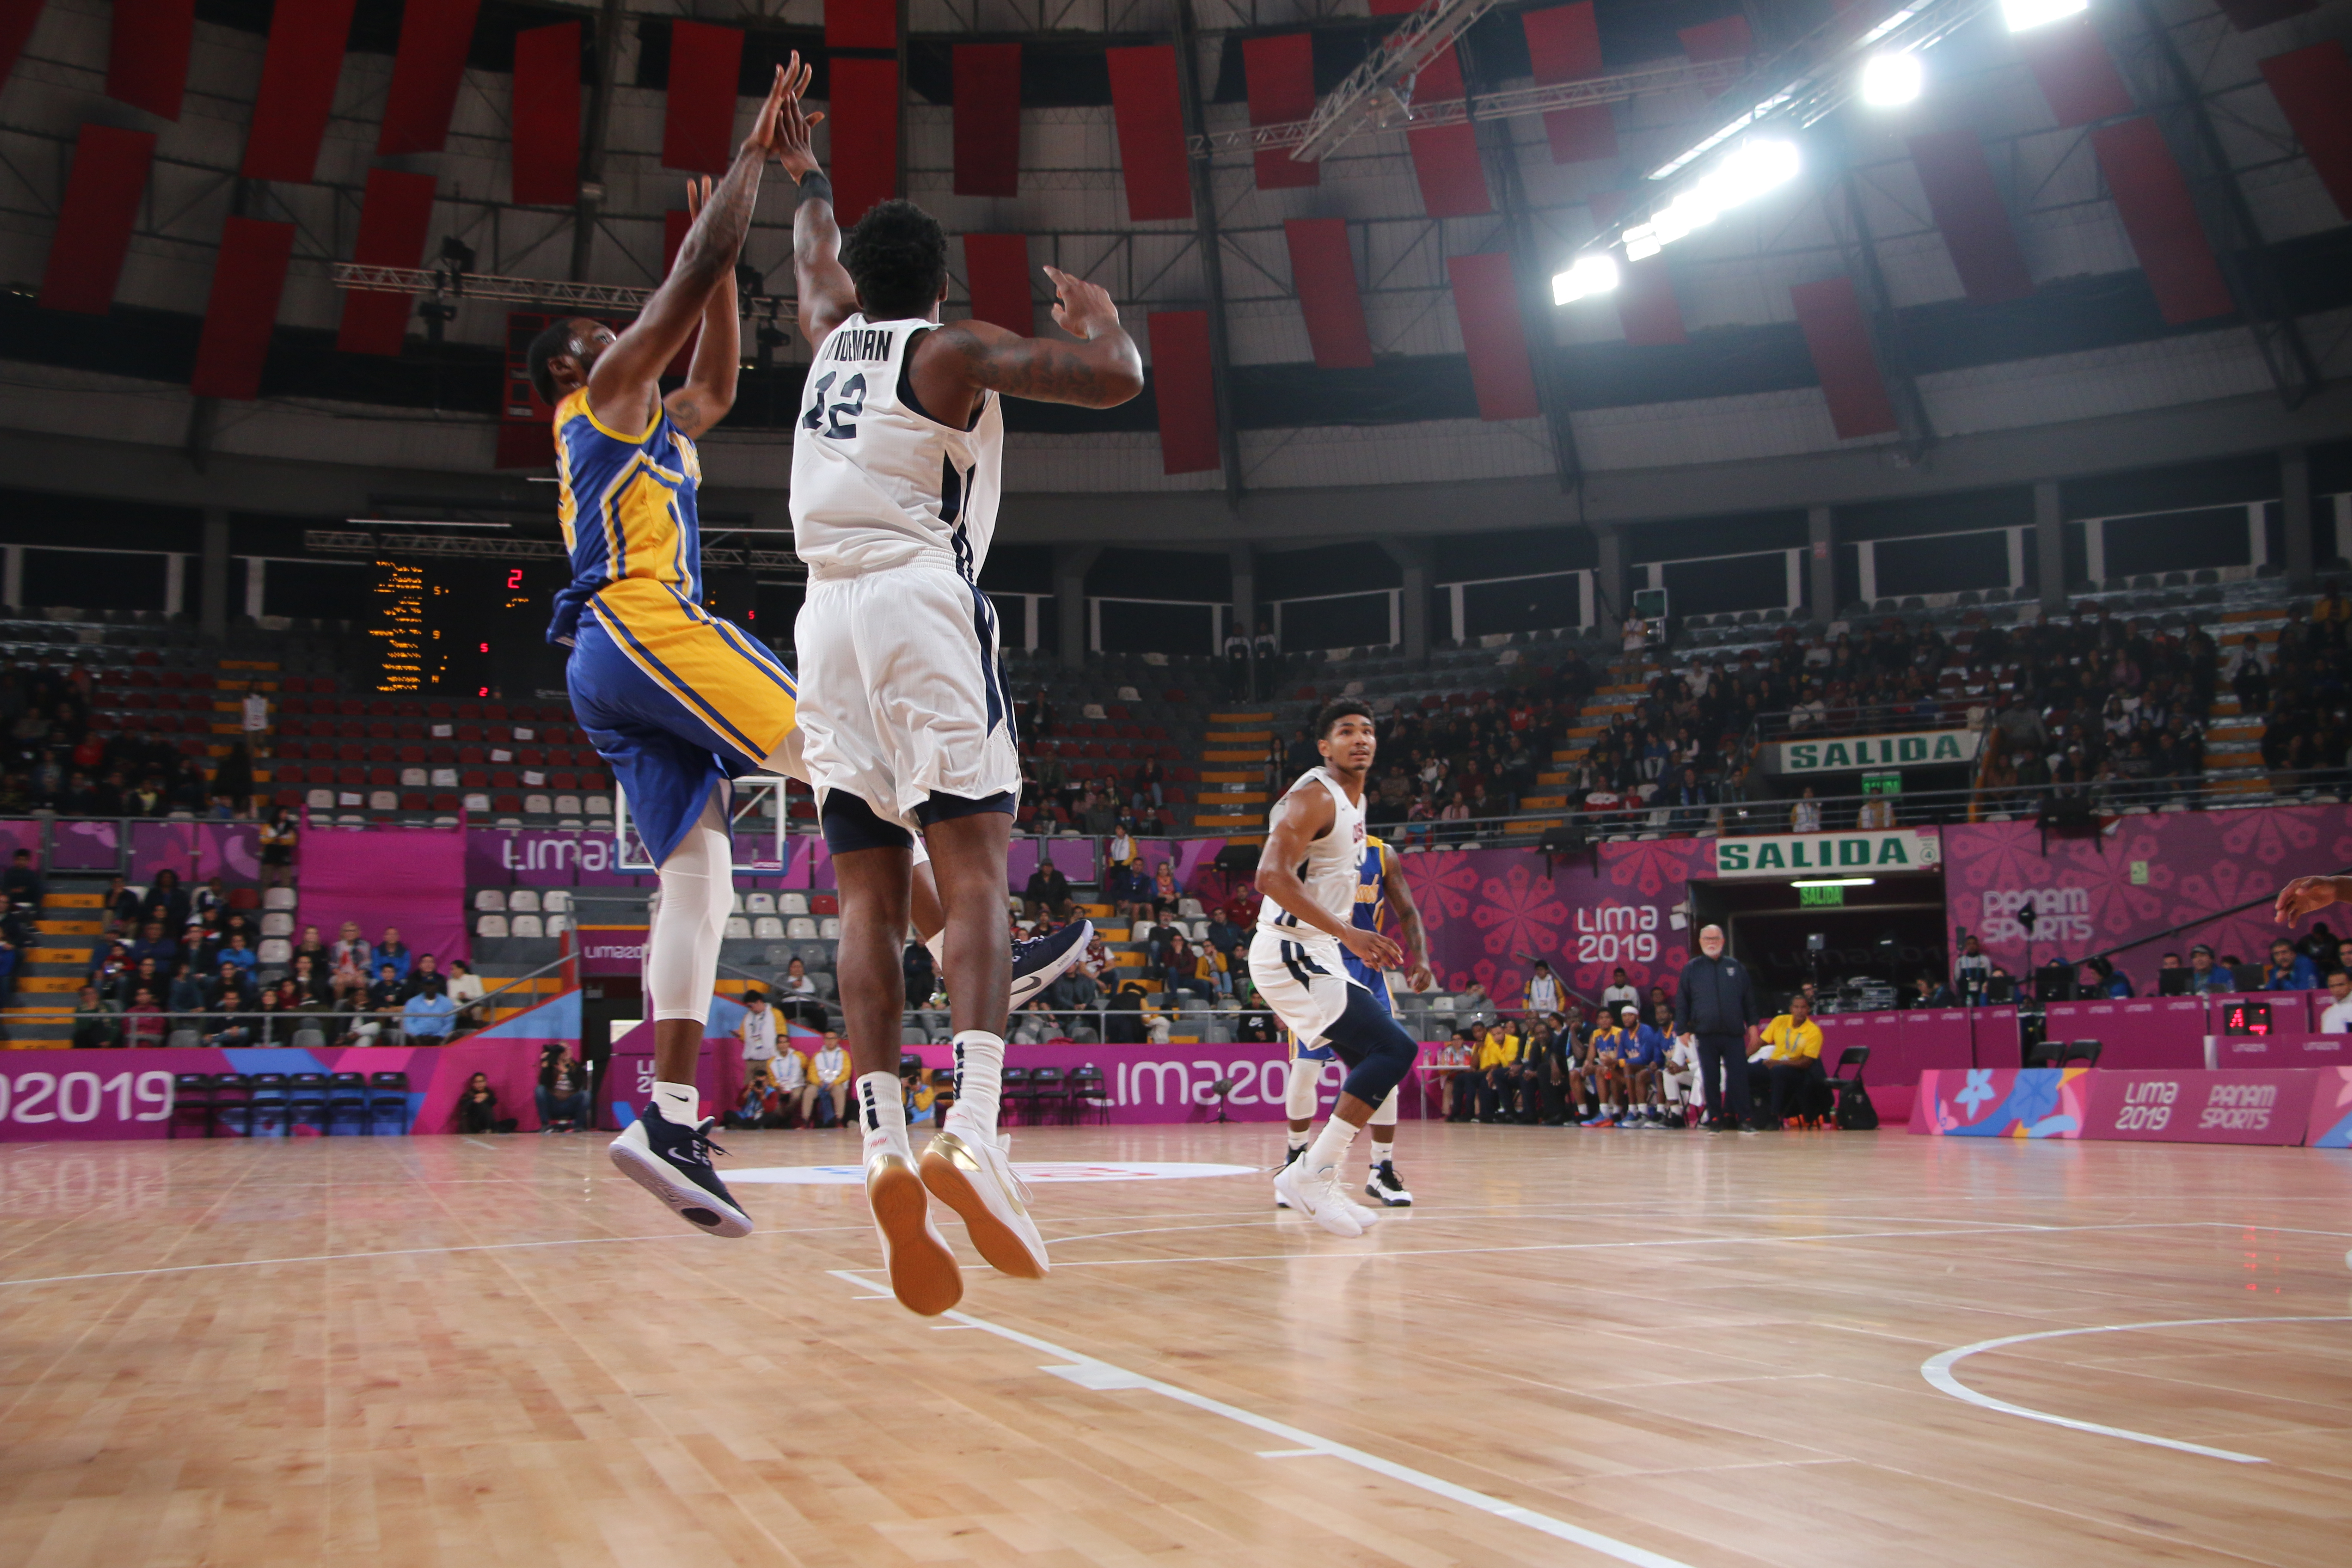 Read more about the article USVI Loses First Game Against USA in 2019 Pan Am Games Debut